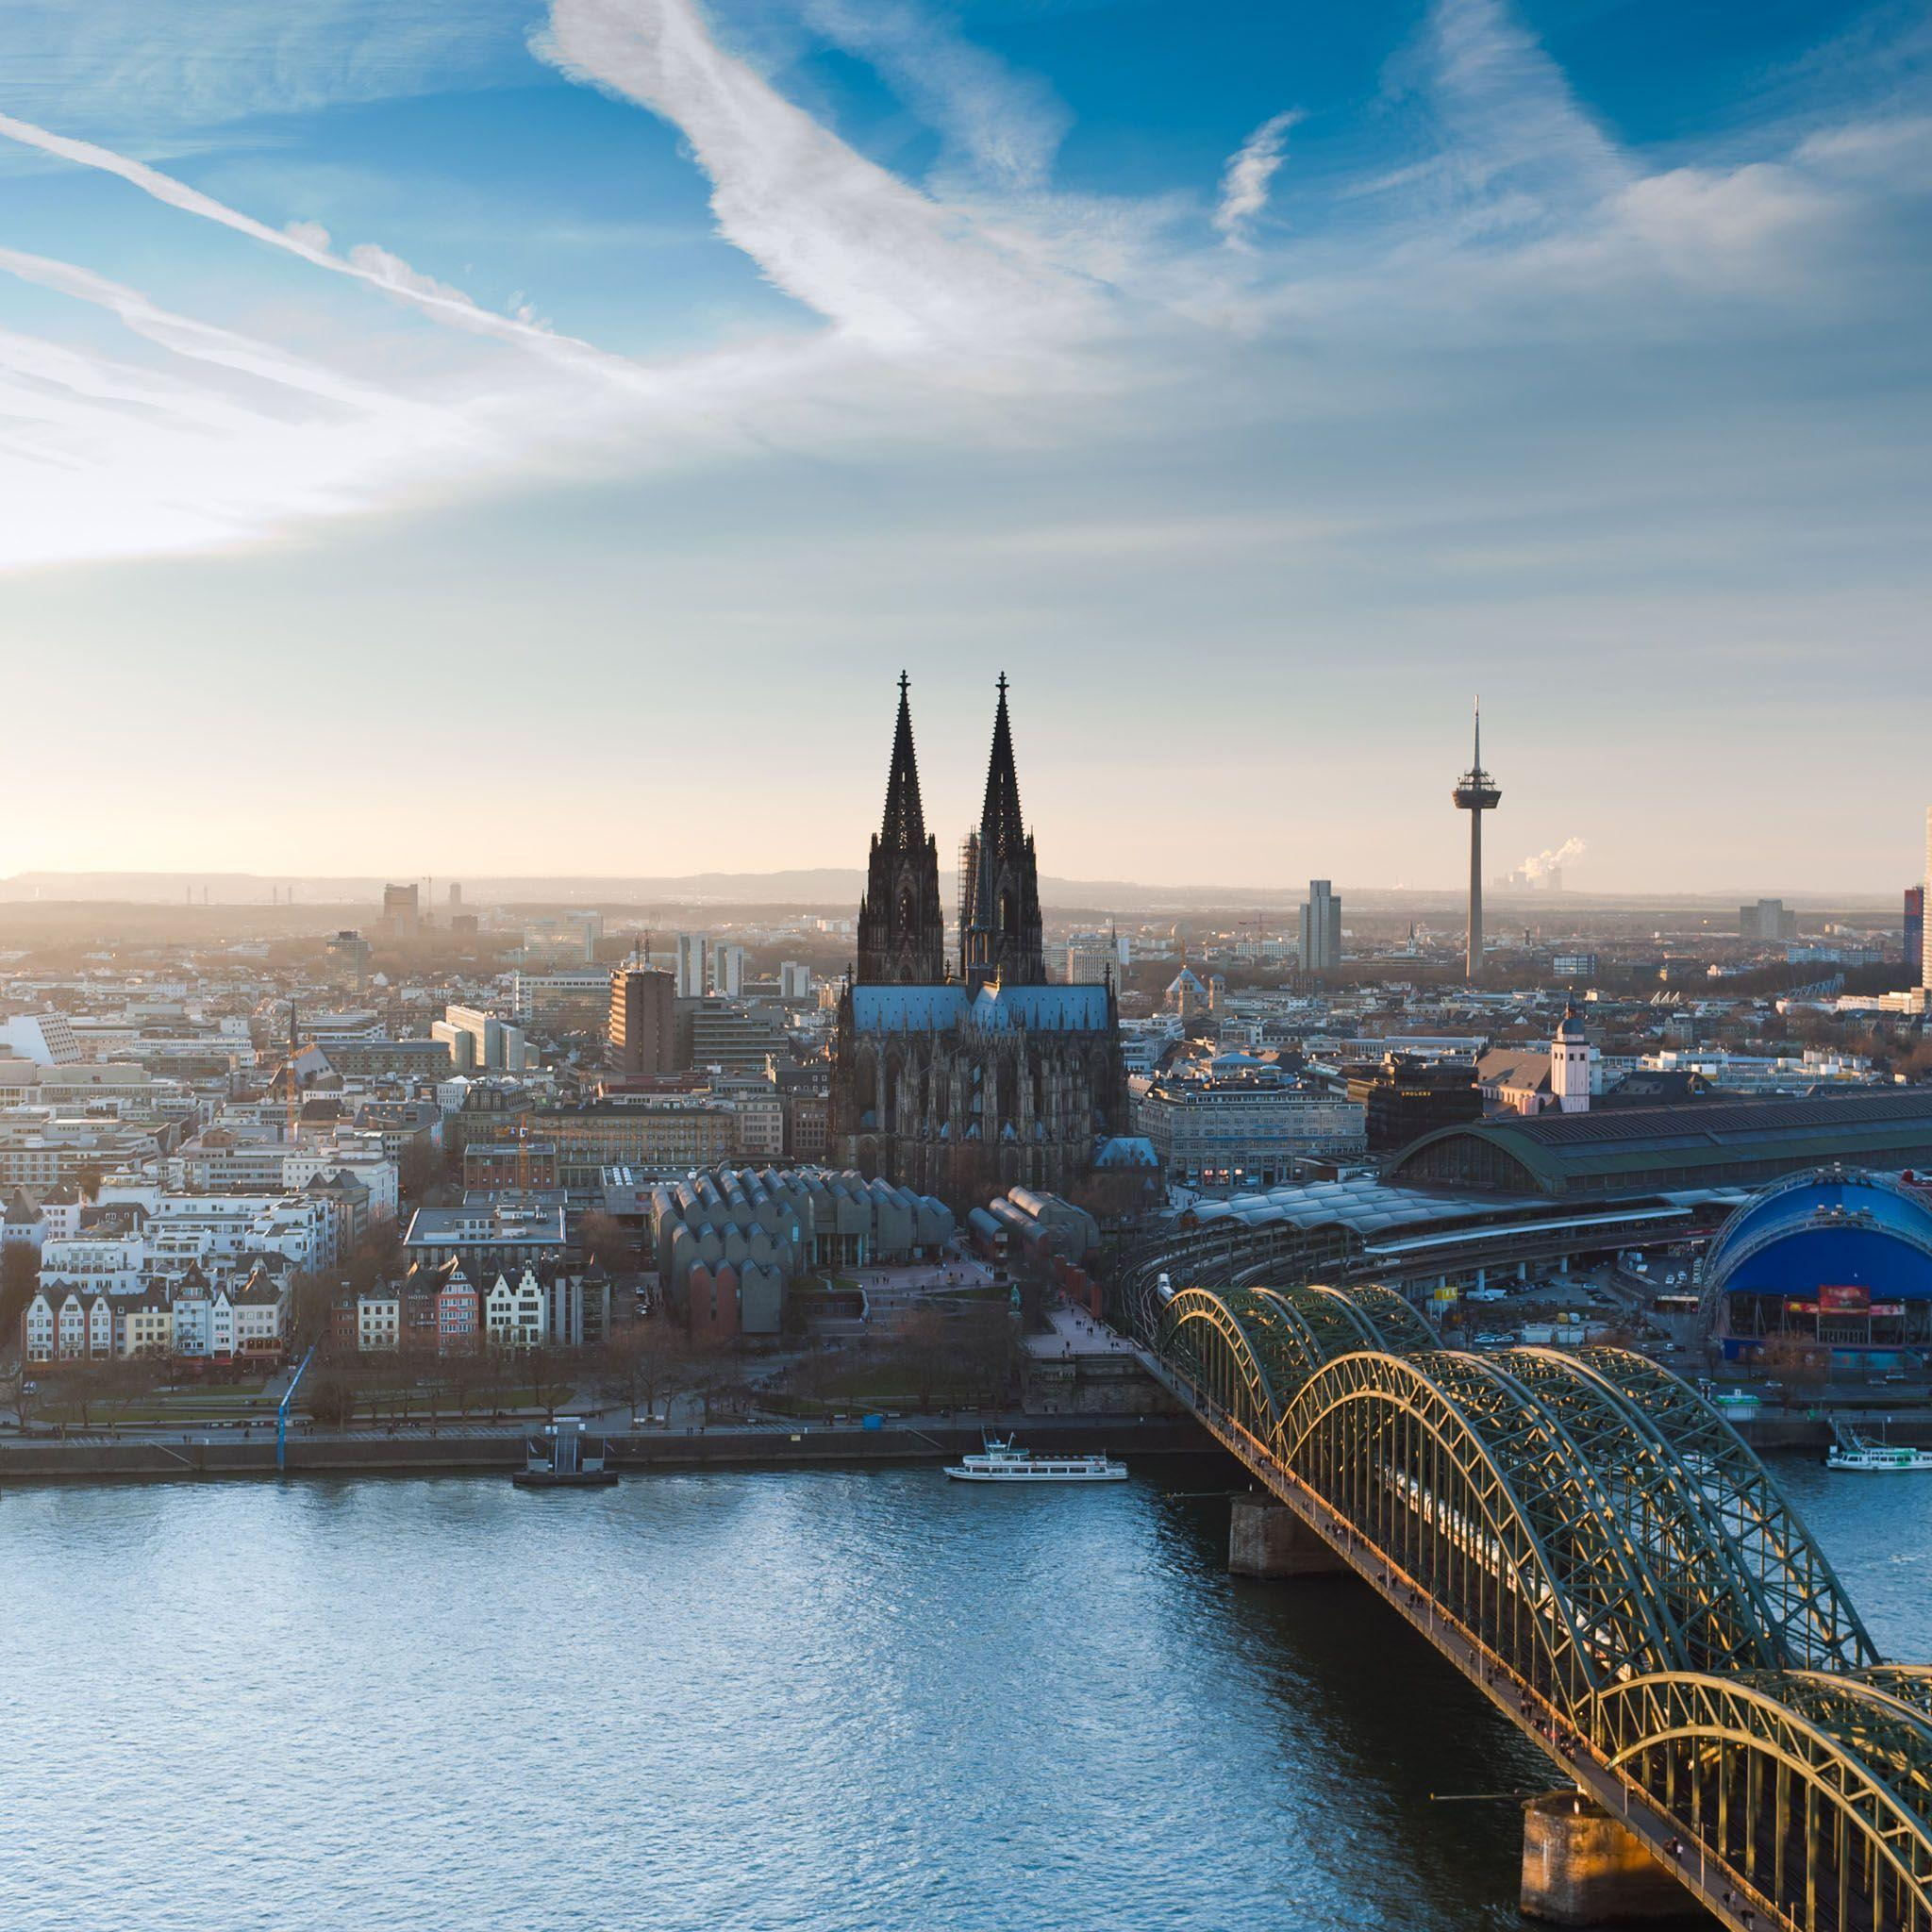 Cologne Cathedral At Dusk Evening Cityscape Wallpaper: Wallpapers Alemania 2016